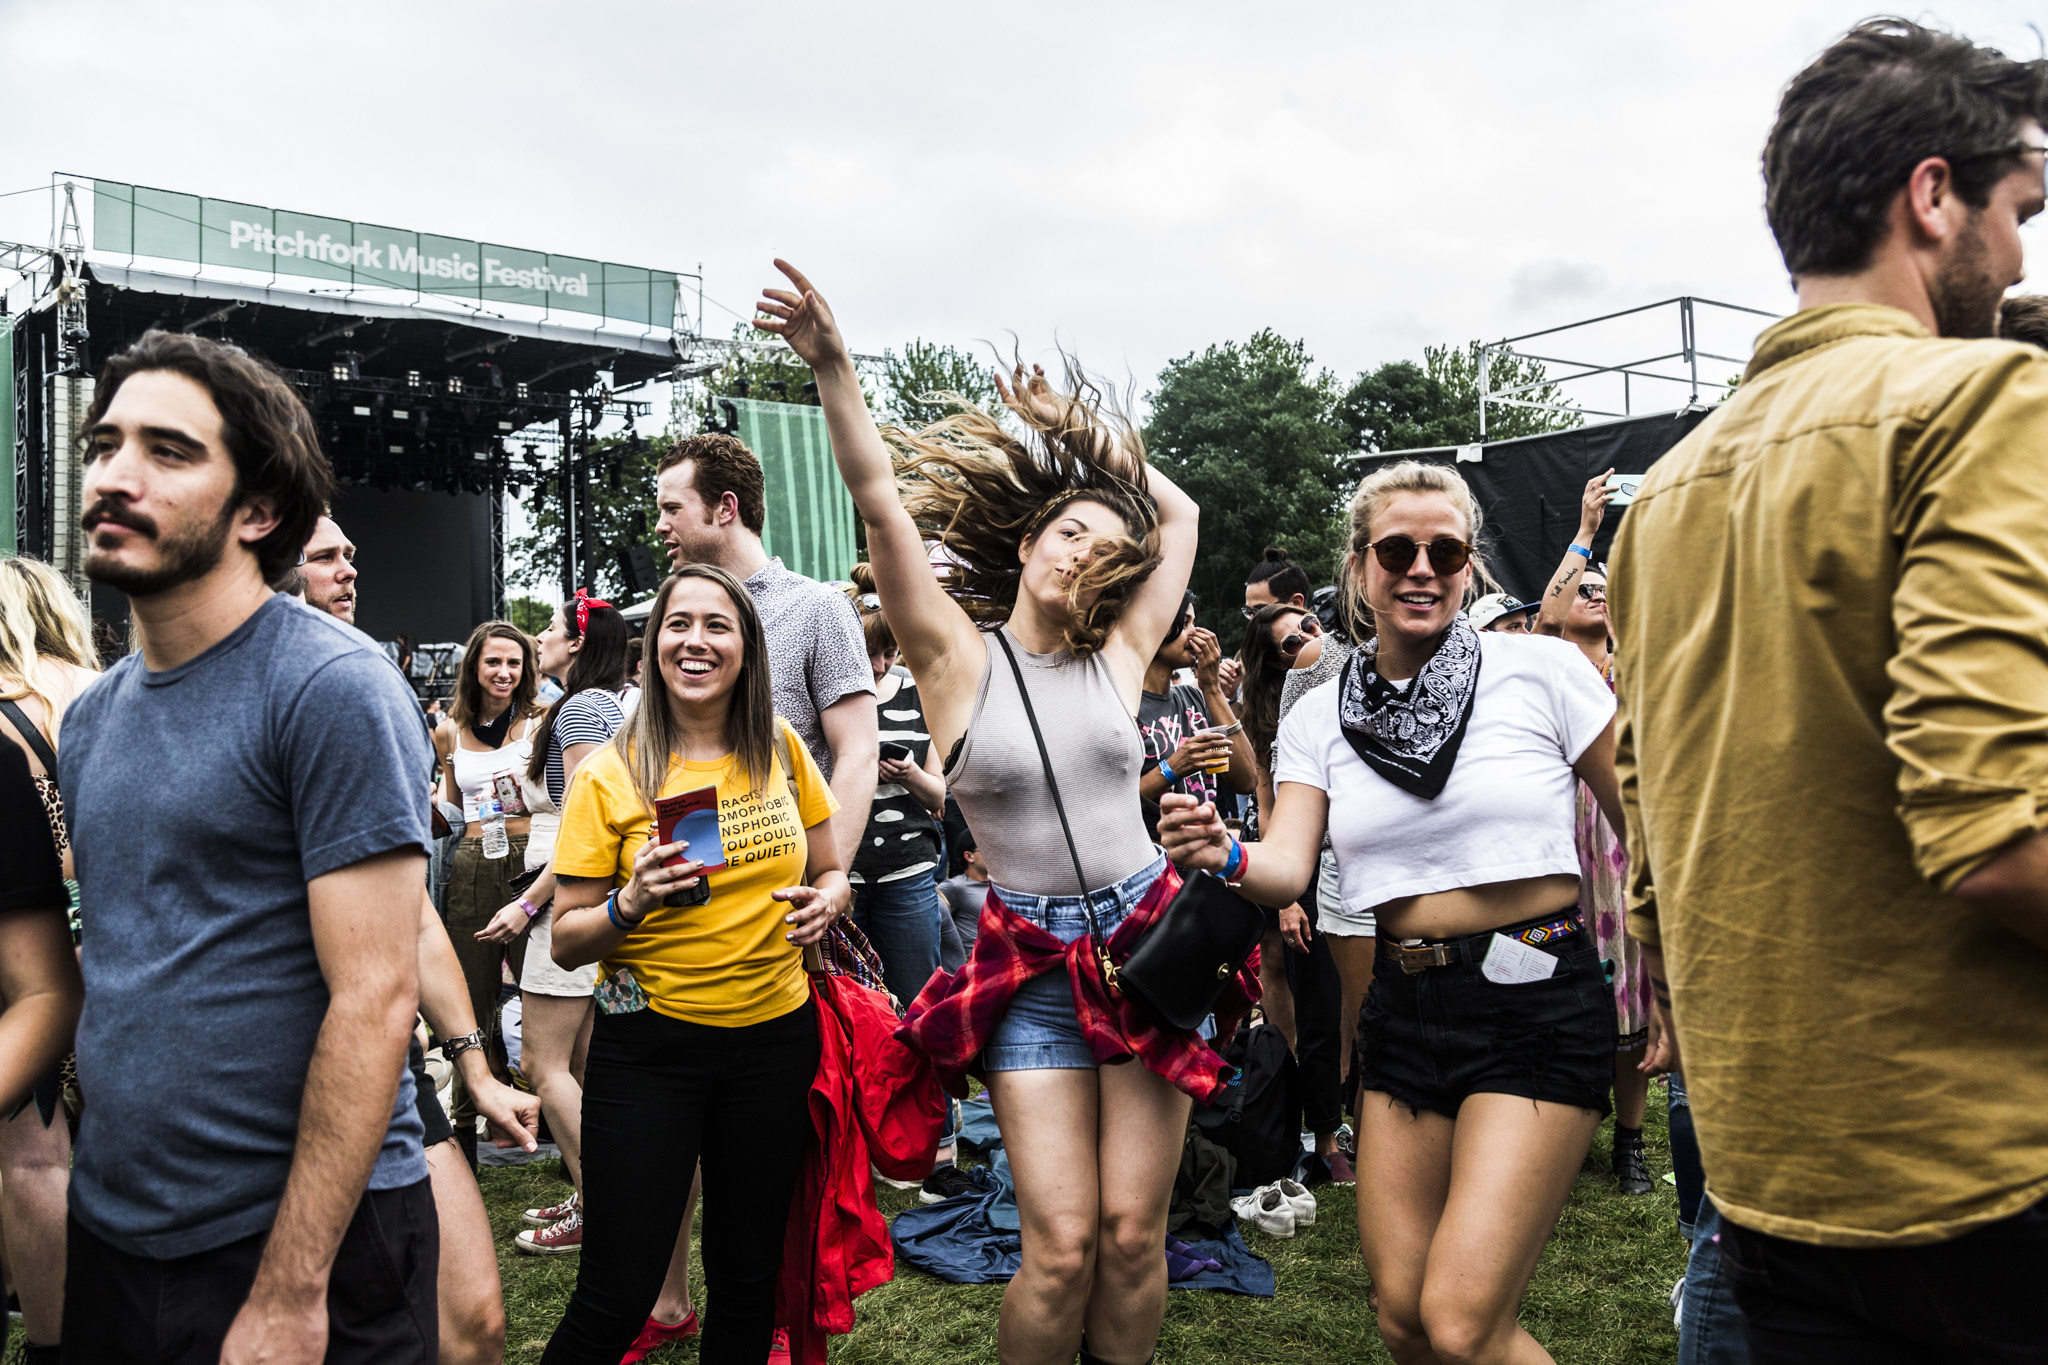 Everything you need to know about the Pitchfork Music Festival